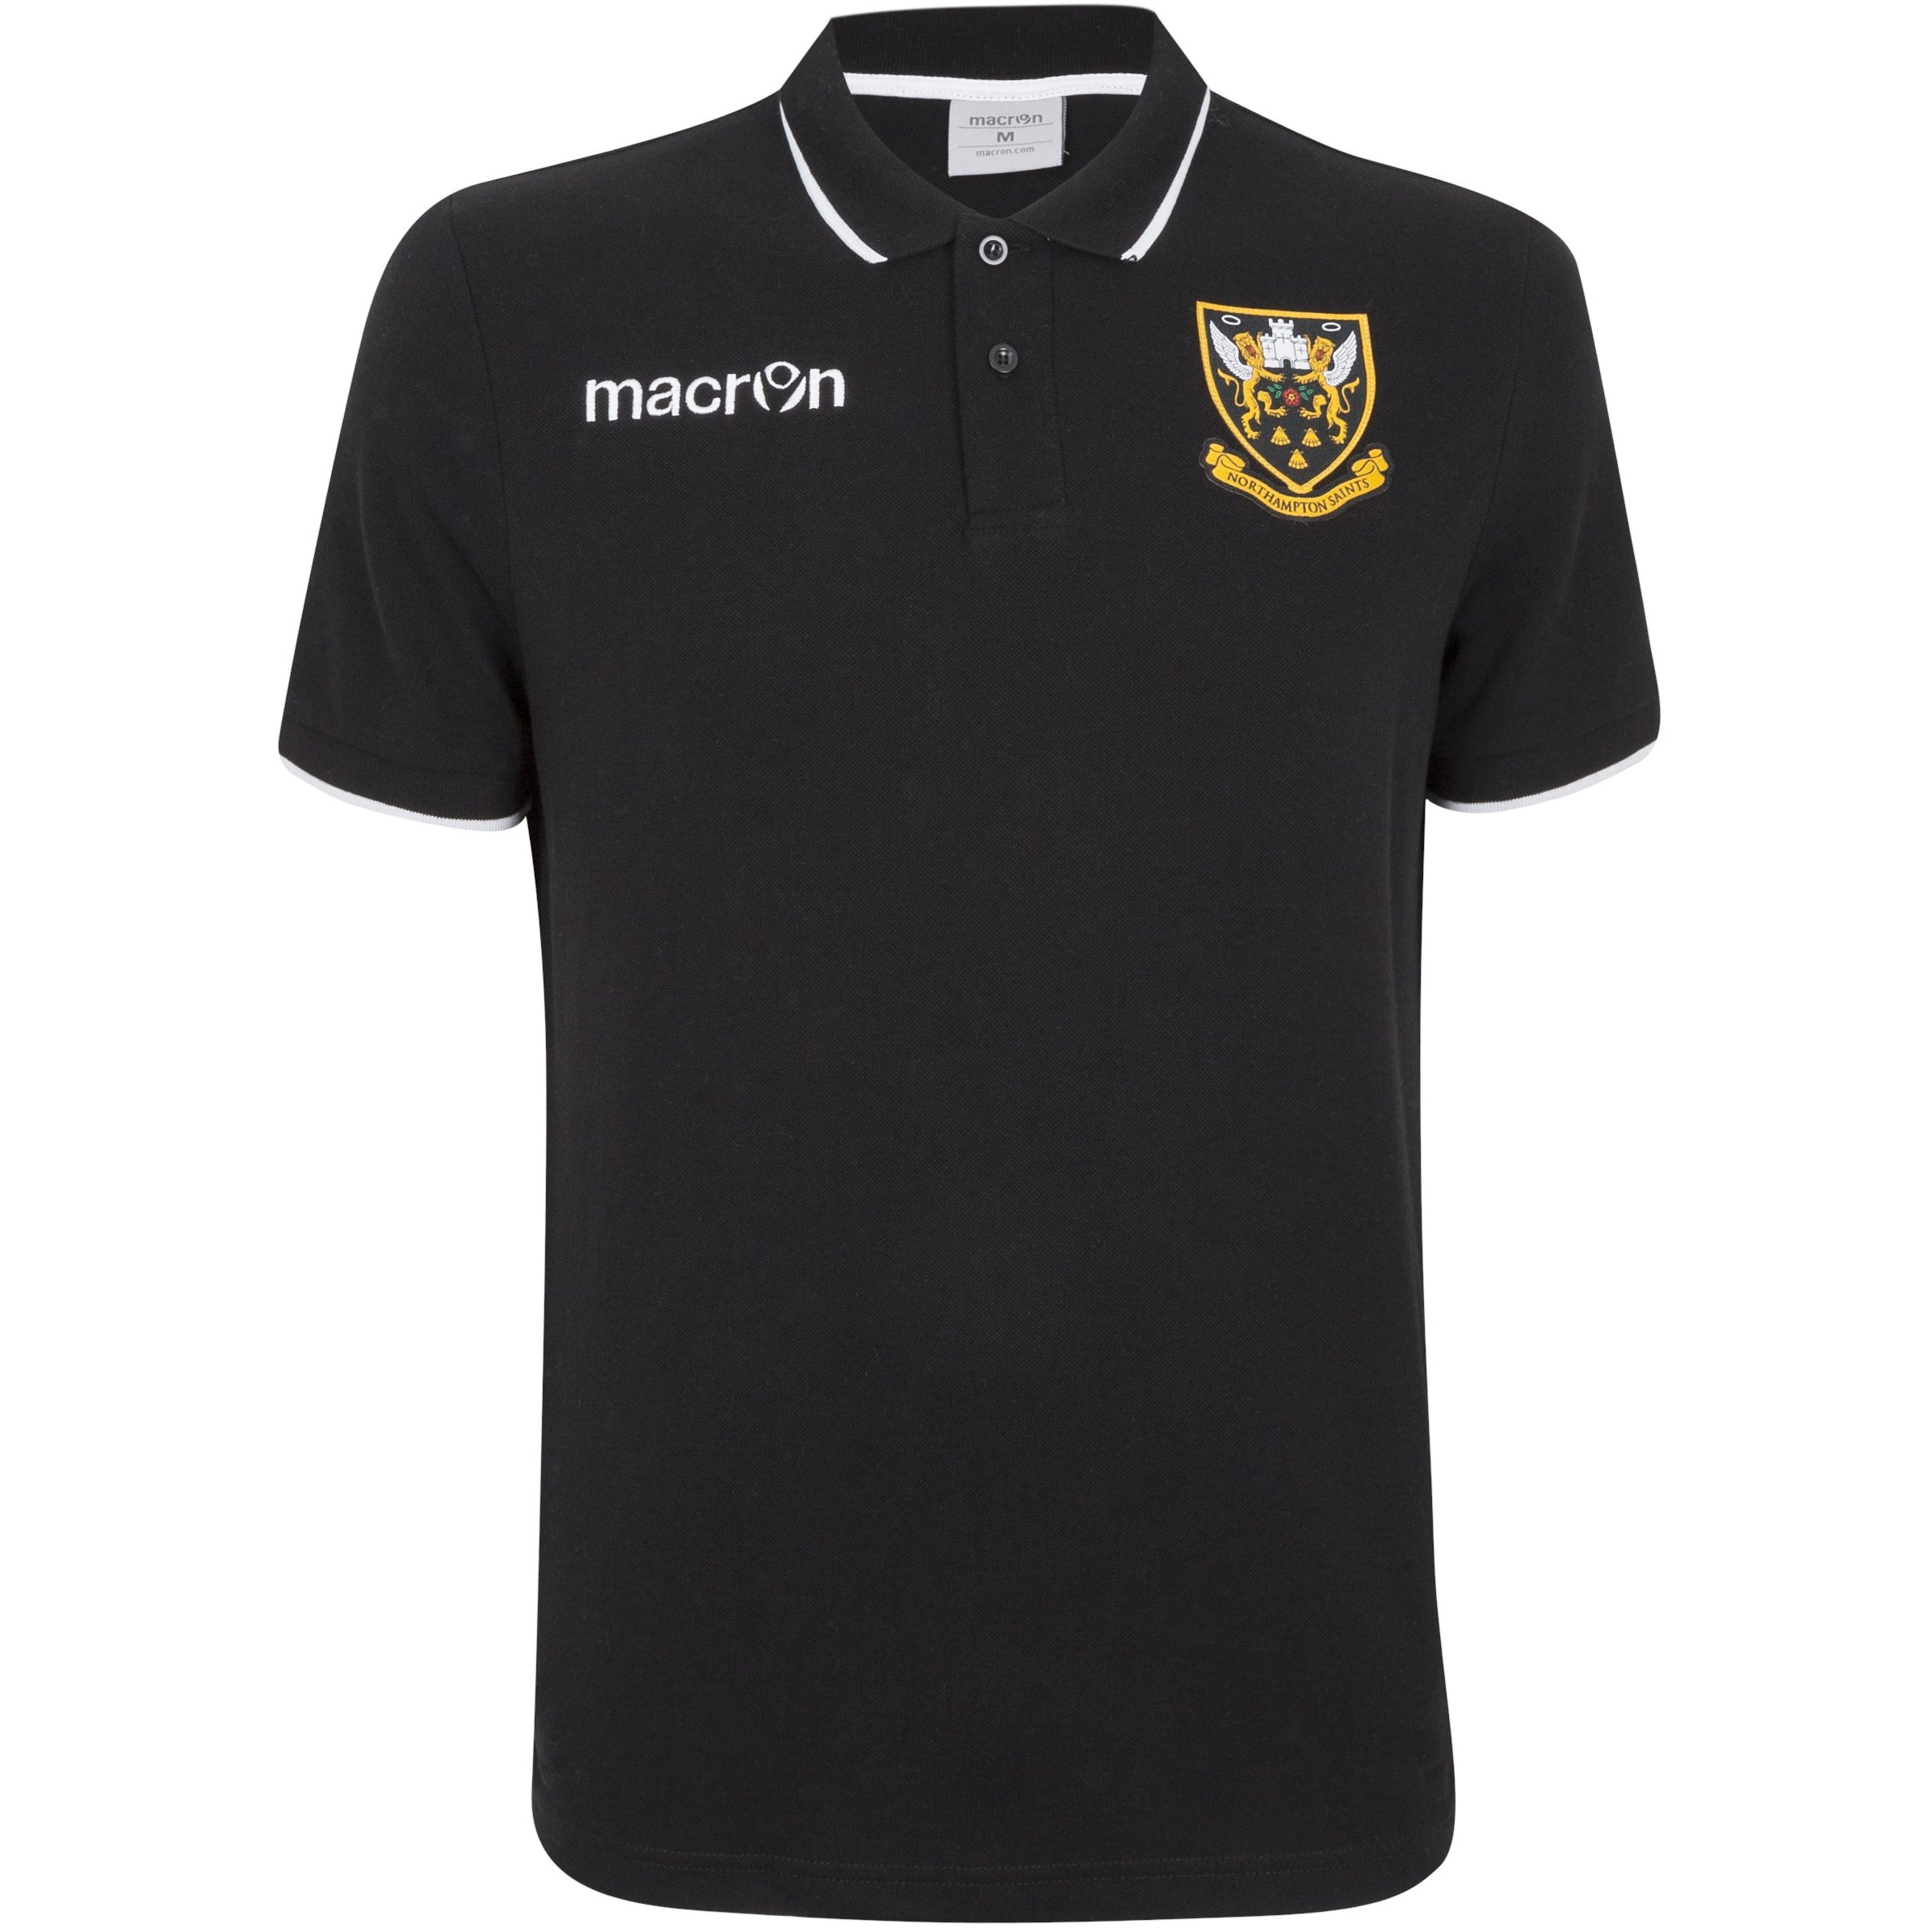 Macron Black Crest Polo Youth